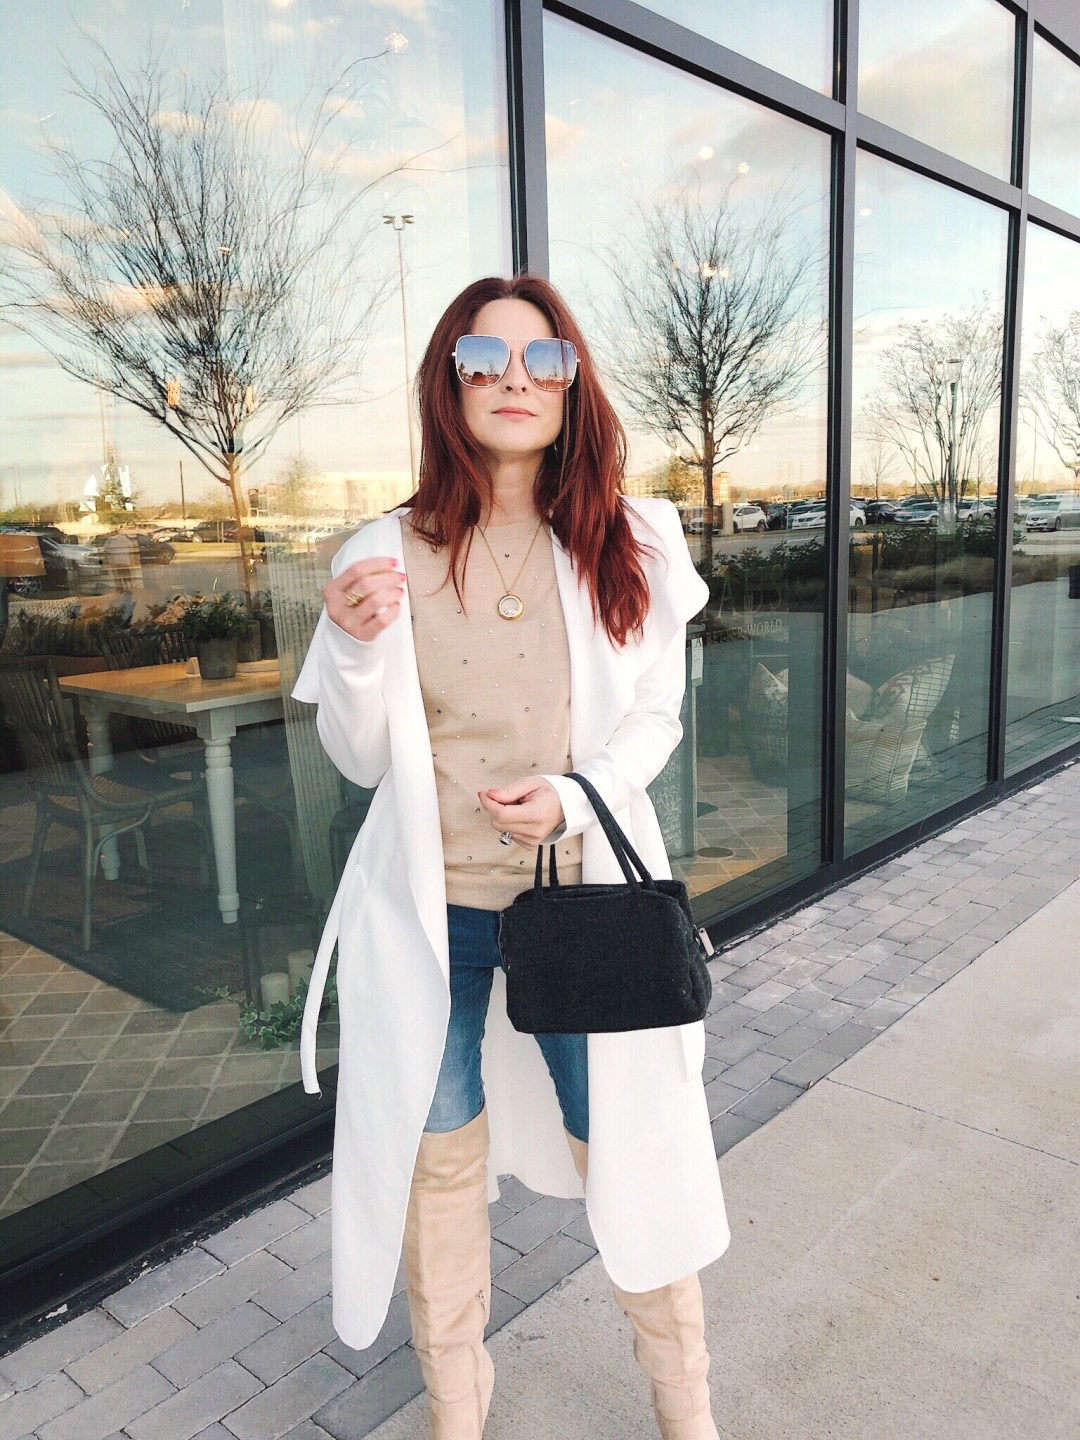 wool handbags, otk cream boots, sweaters with embellishments, suare mirror sunglasses, white duster, over the knee boot outfit ideas